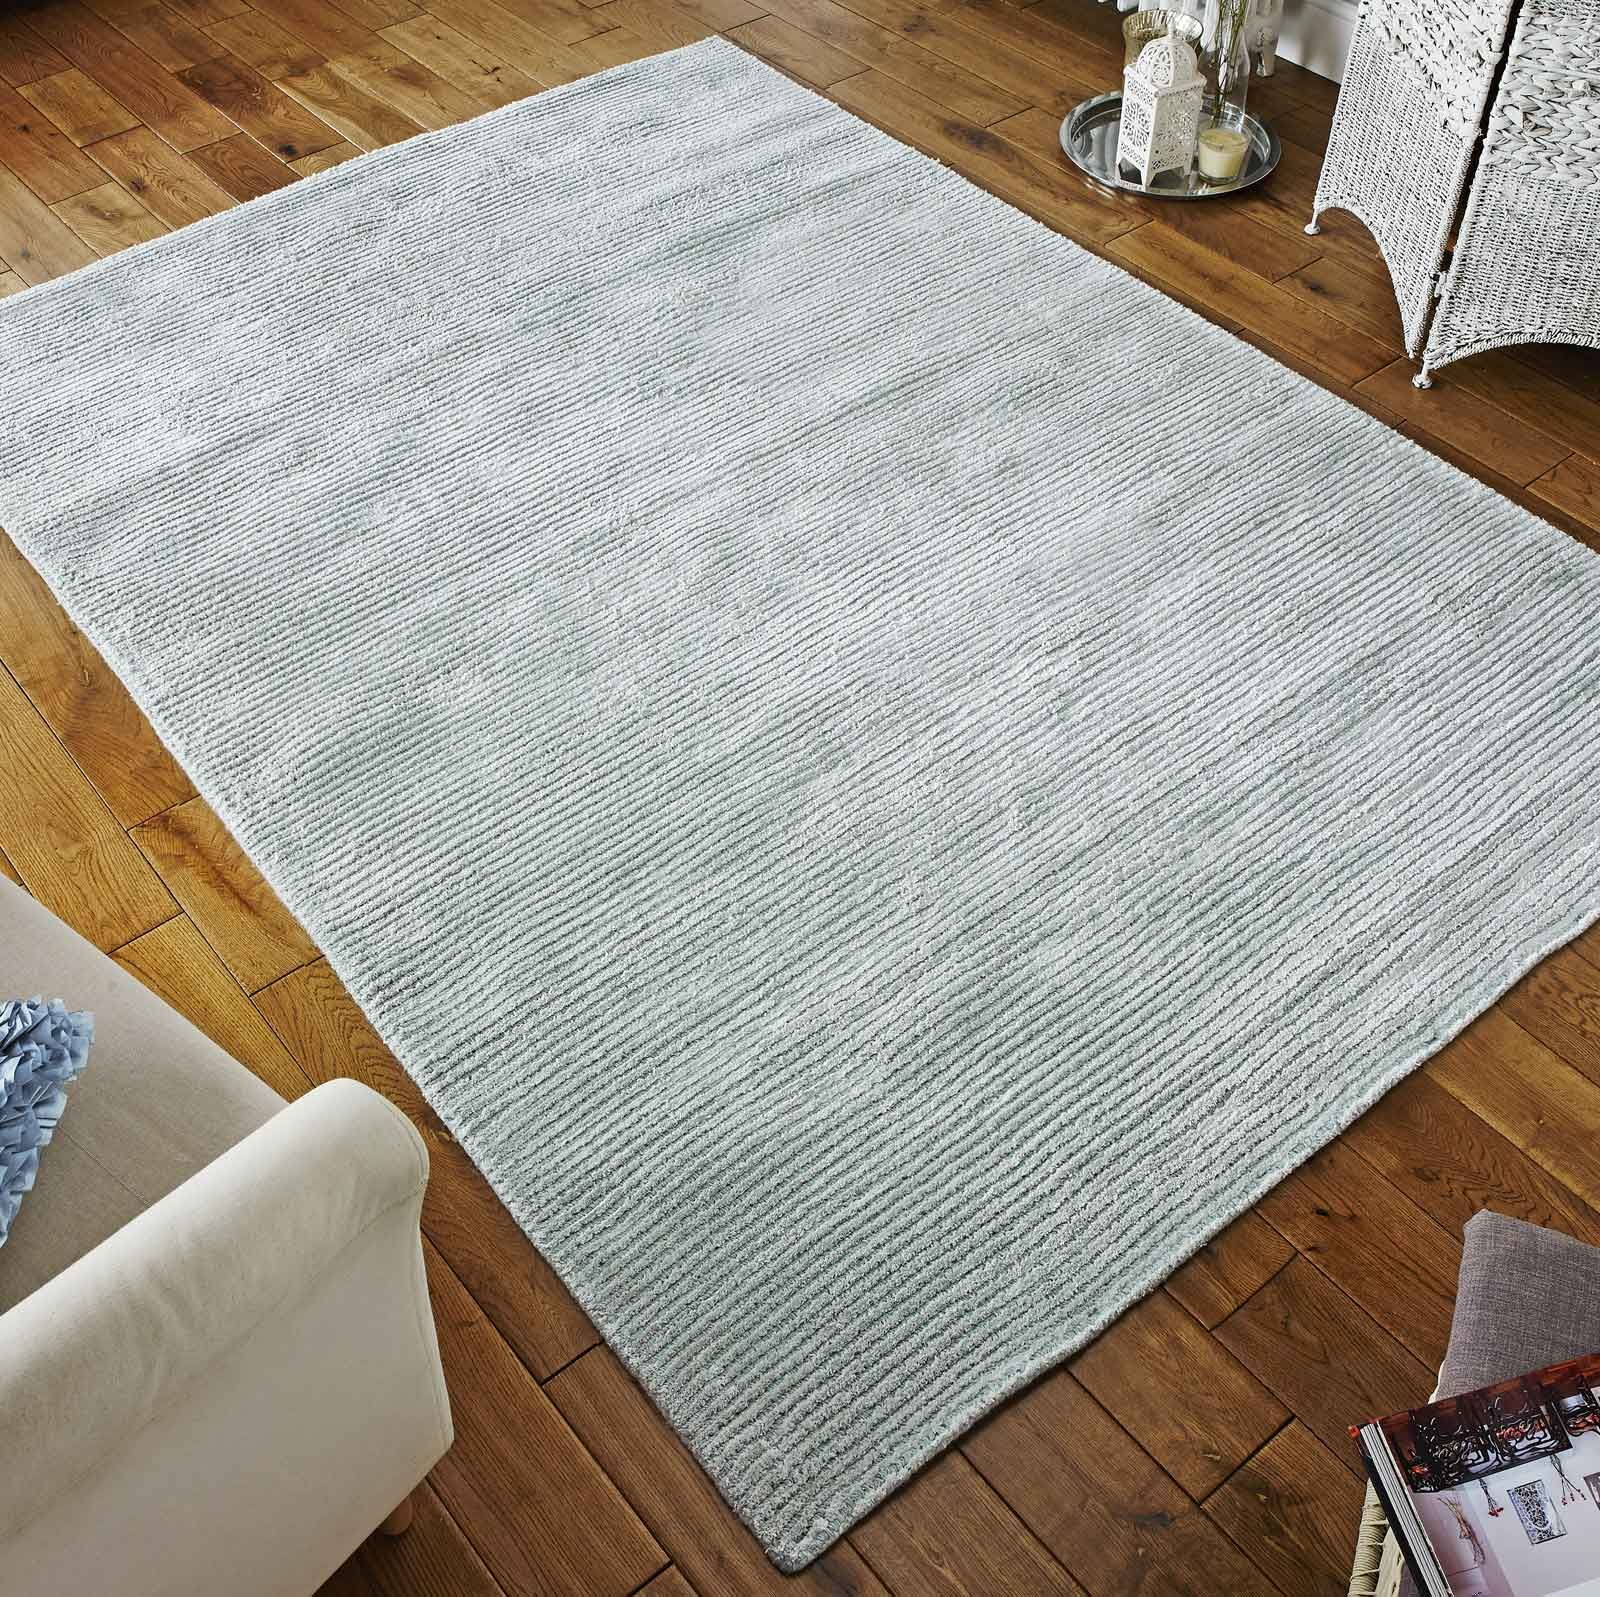 Conran Rug In Duck Egg Blue With